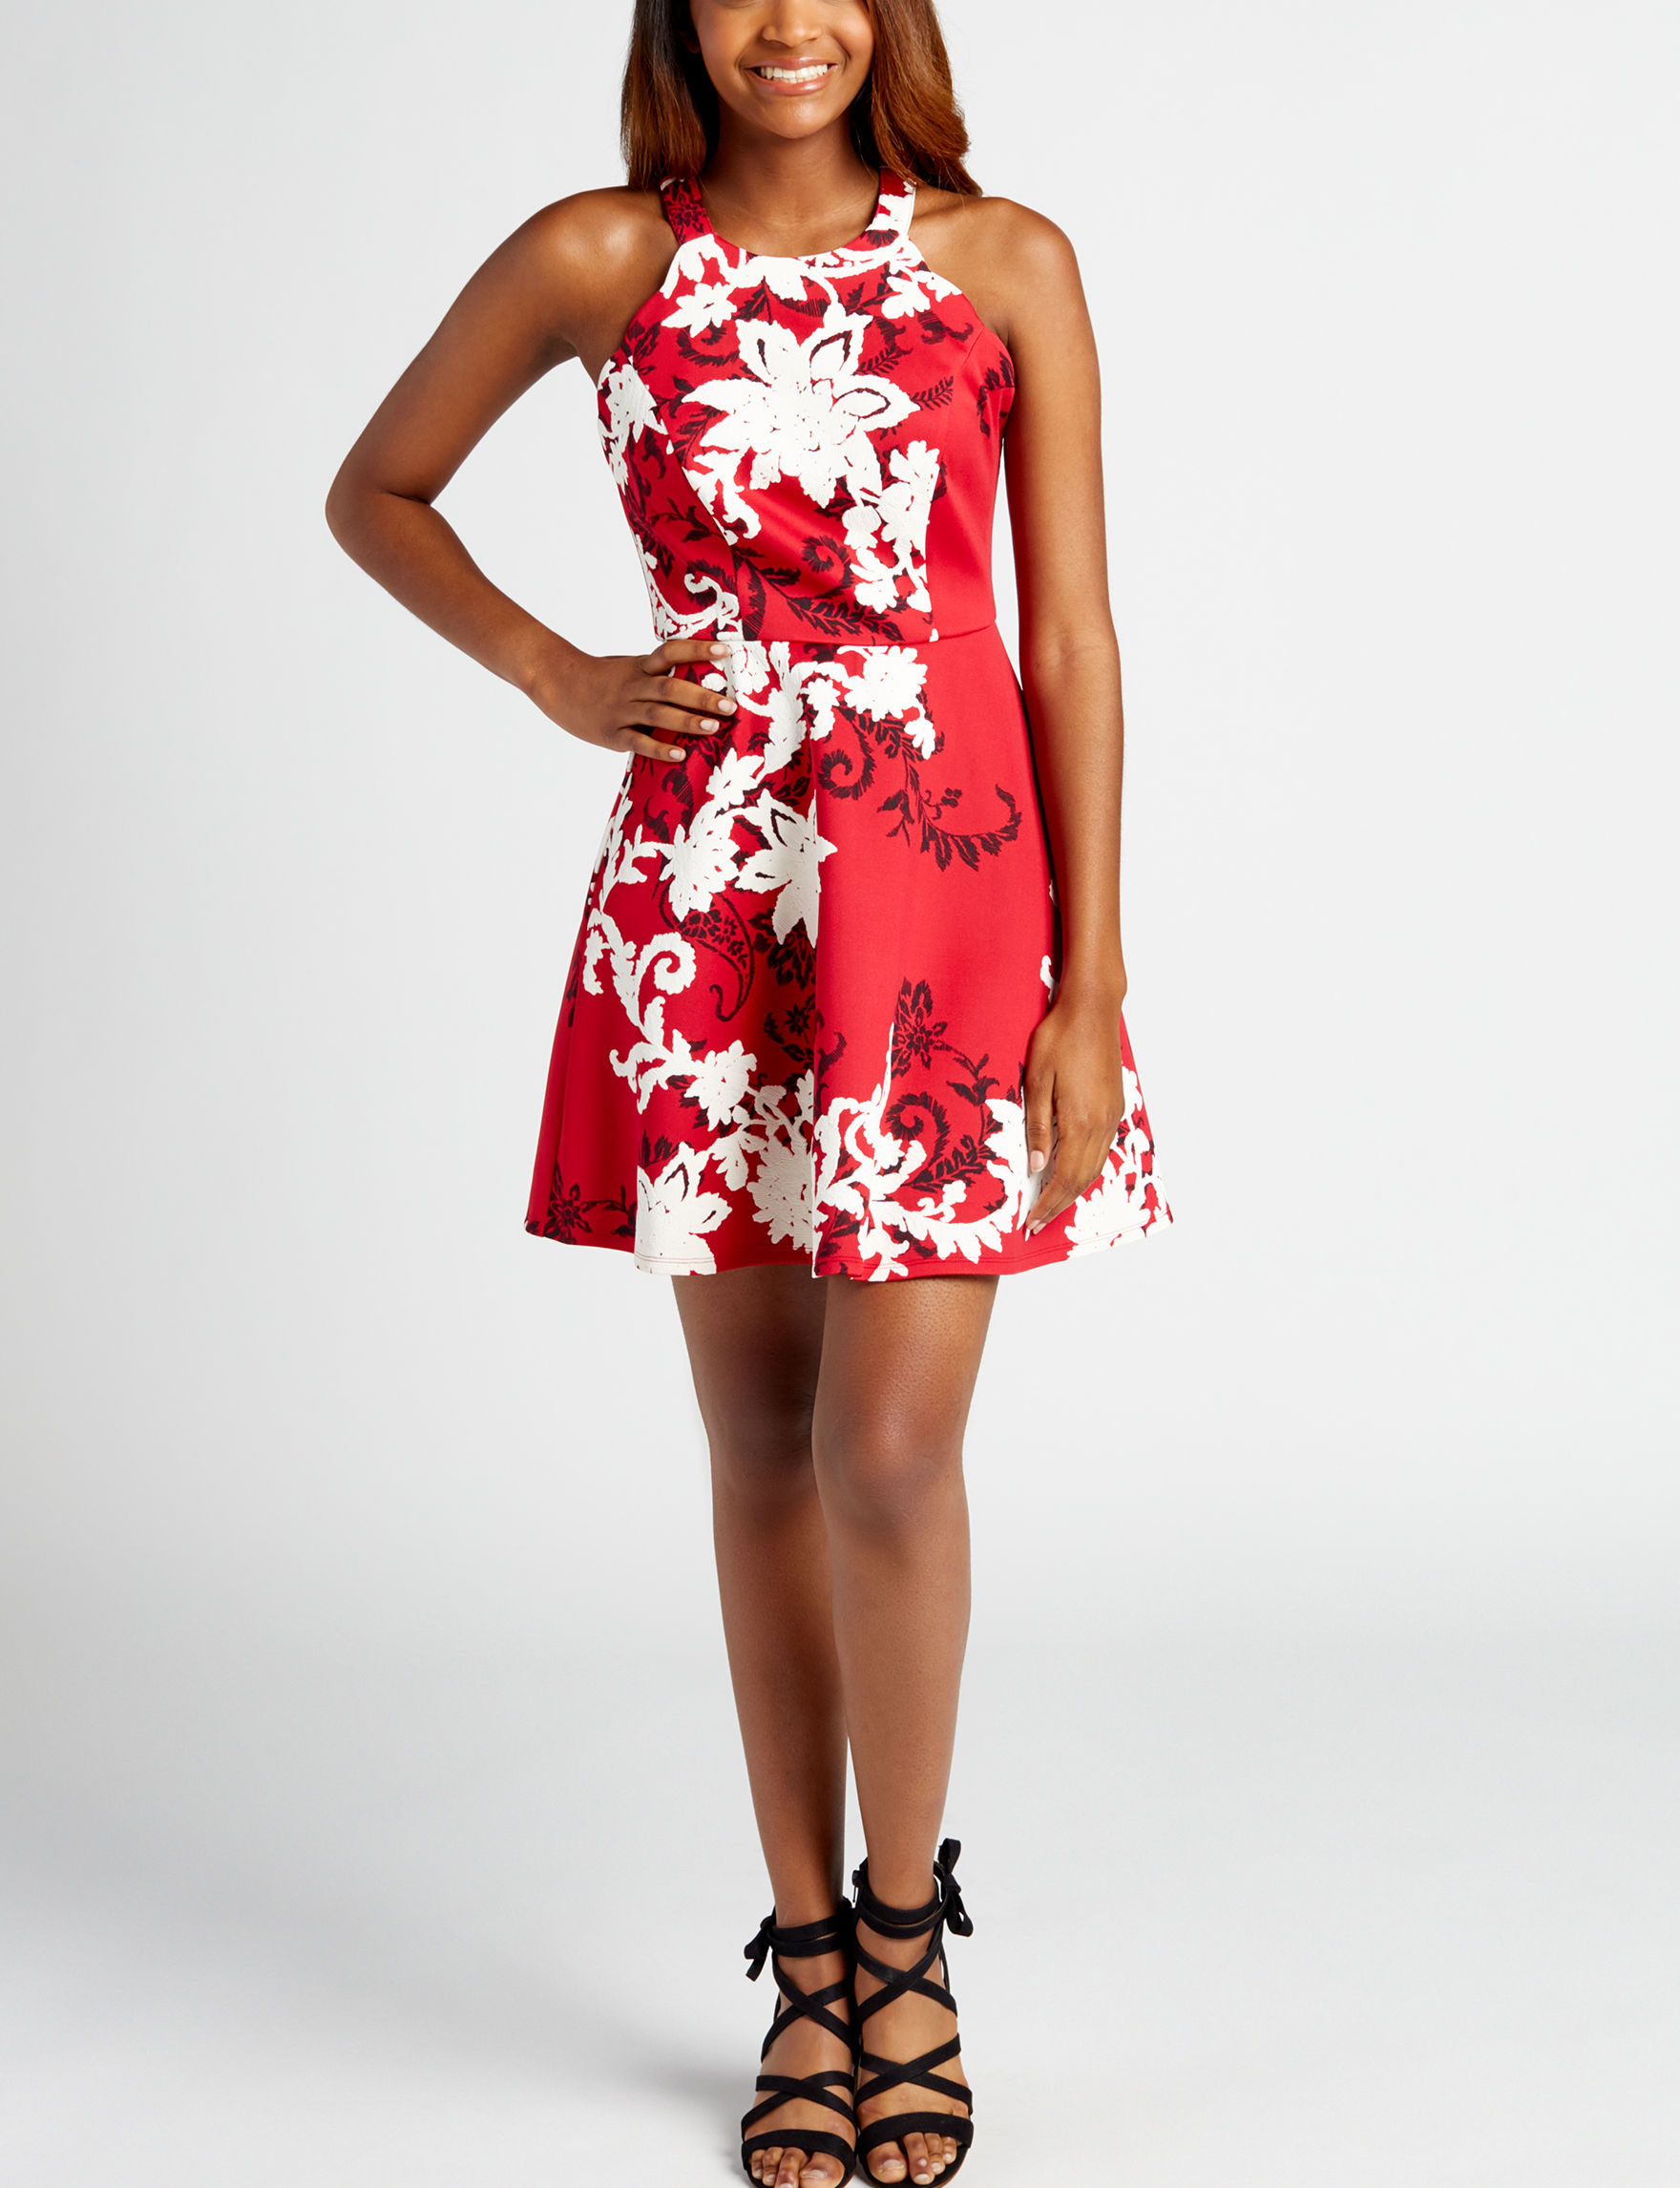 Trixxi Red Floral Evening & Formal Fit & Flare Dresses